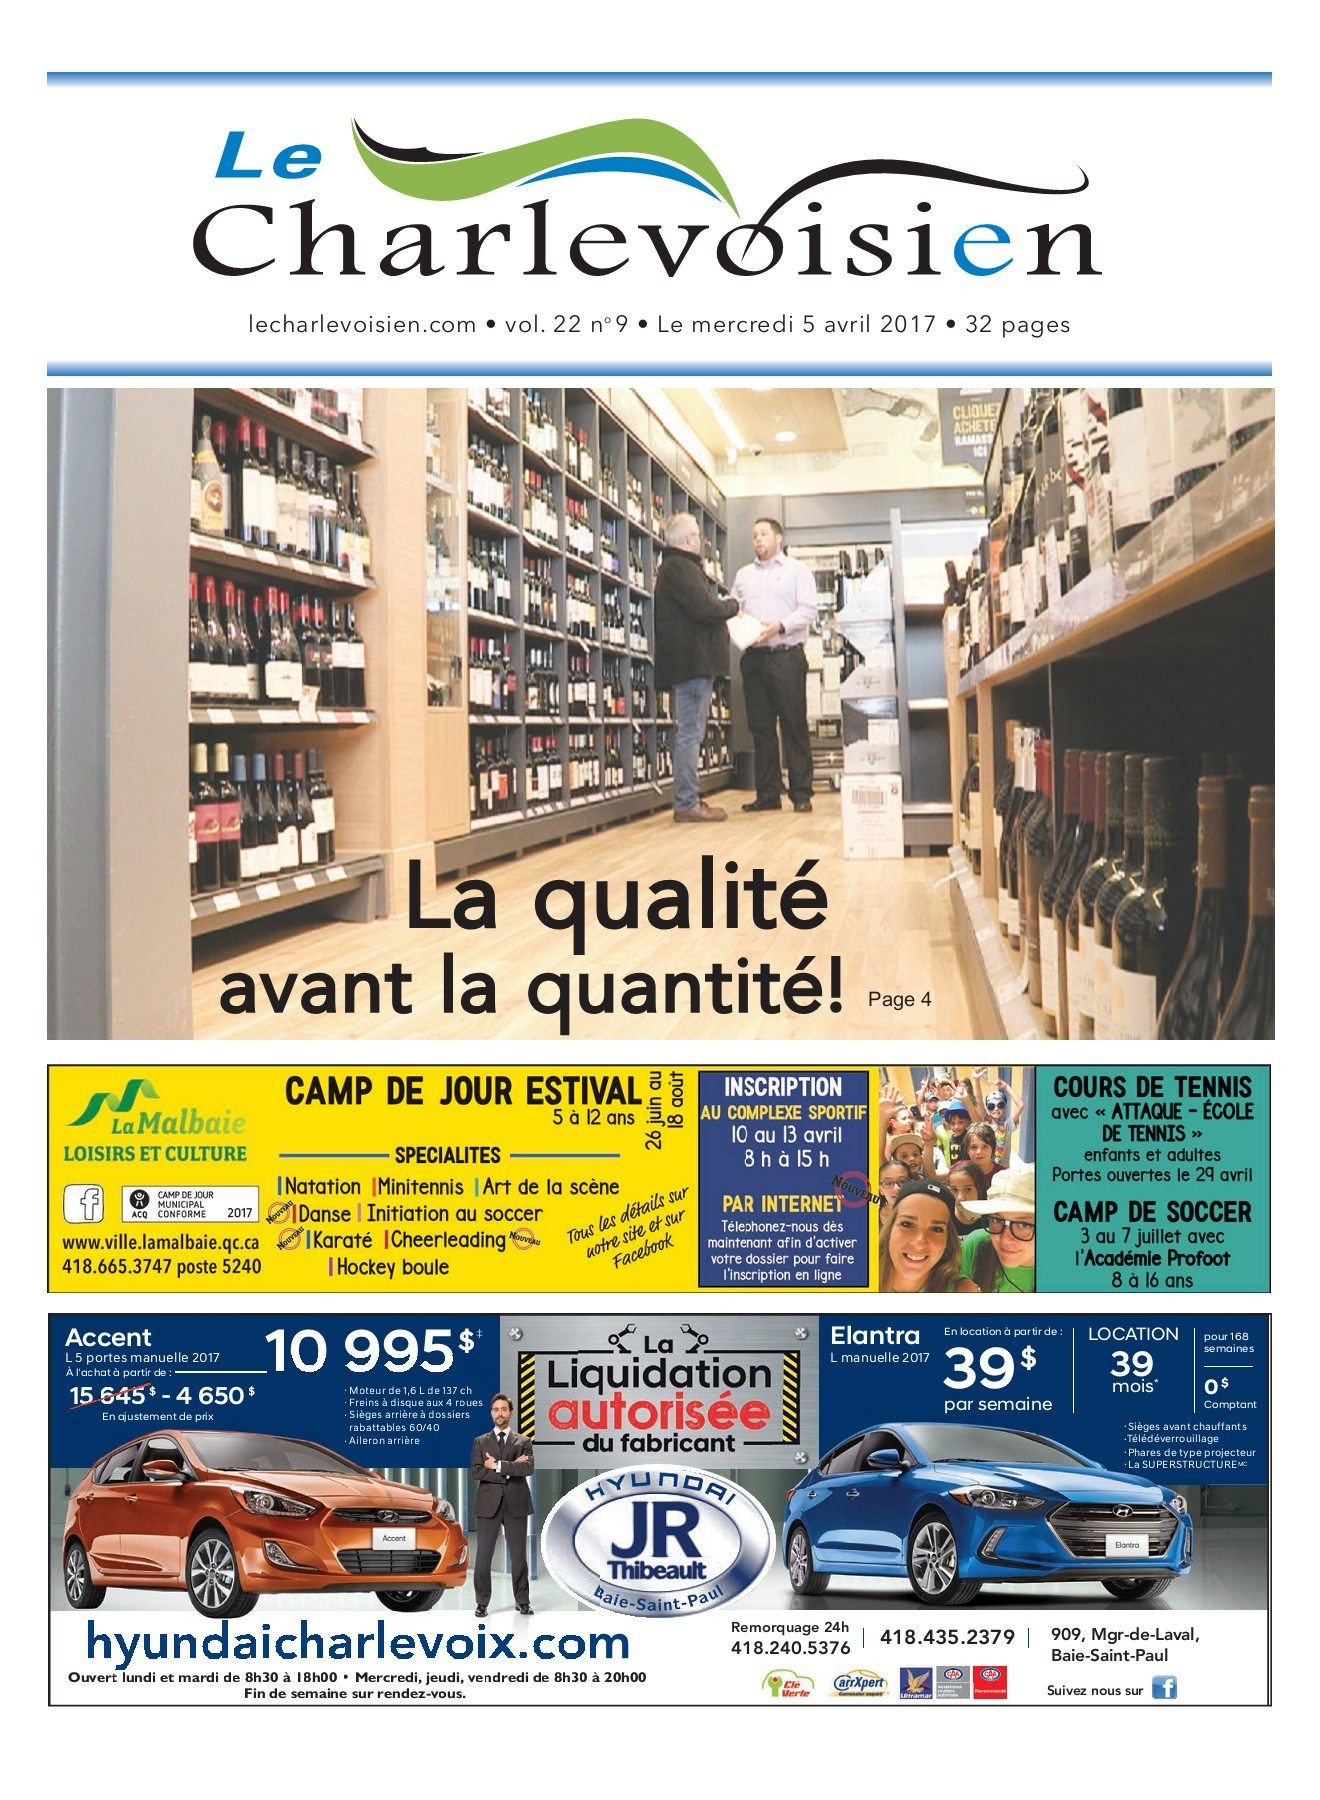 Comment Rehausser Un Lit Trop Bas Impressionnant Photos Le Charlevoisien 5 Avril 2017 Pages 1 32 Text Version